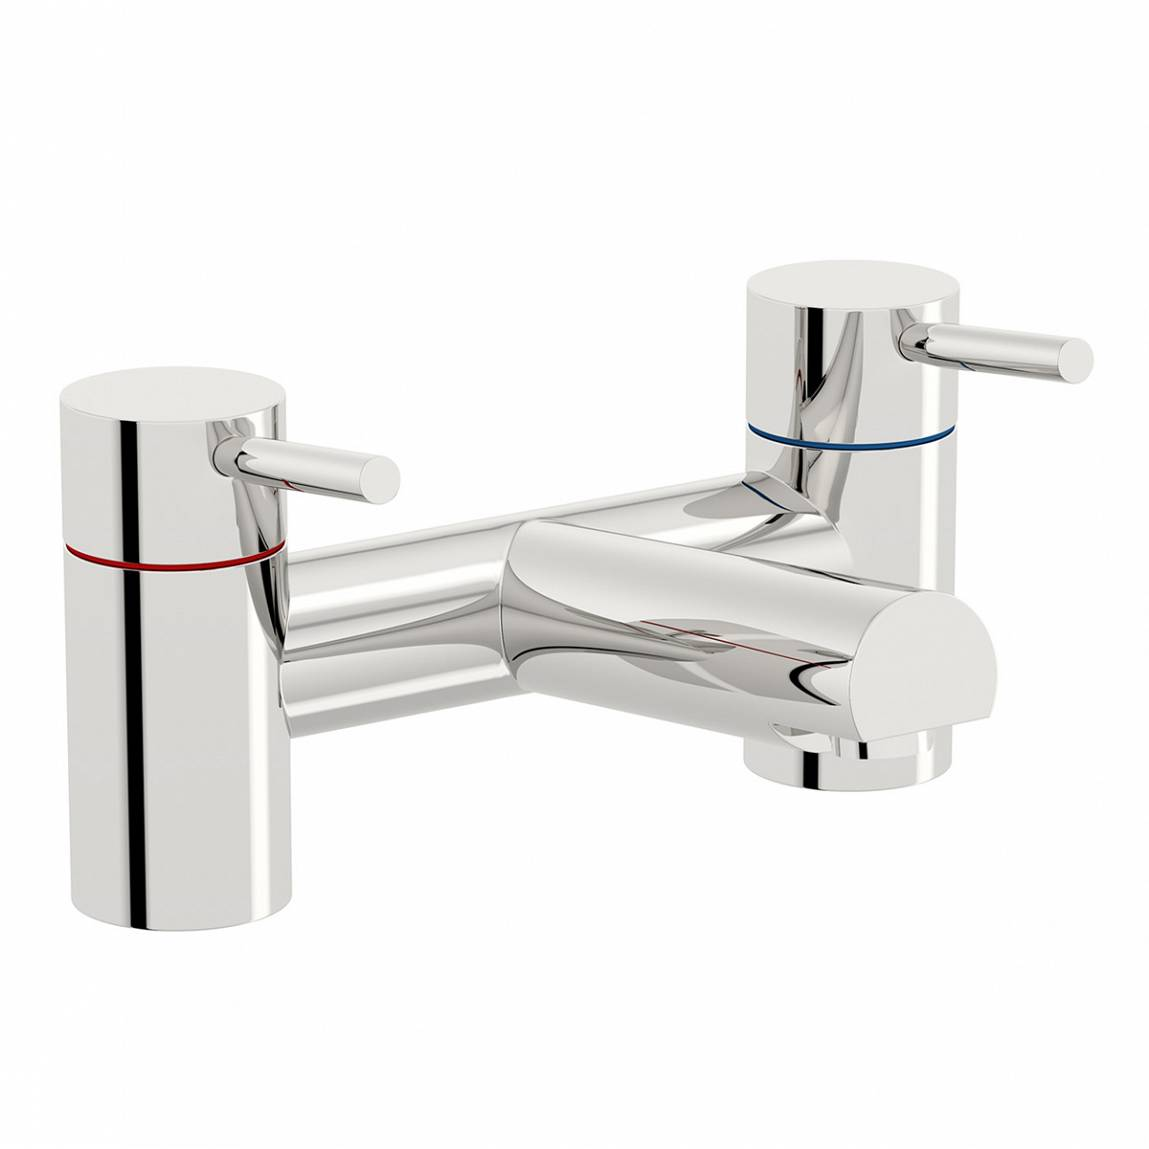 Image of Matrix Bath Mixer